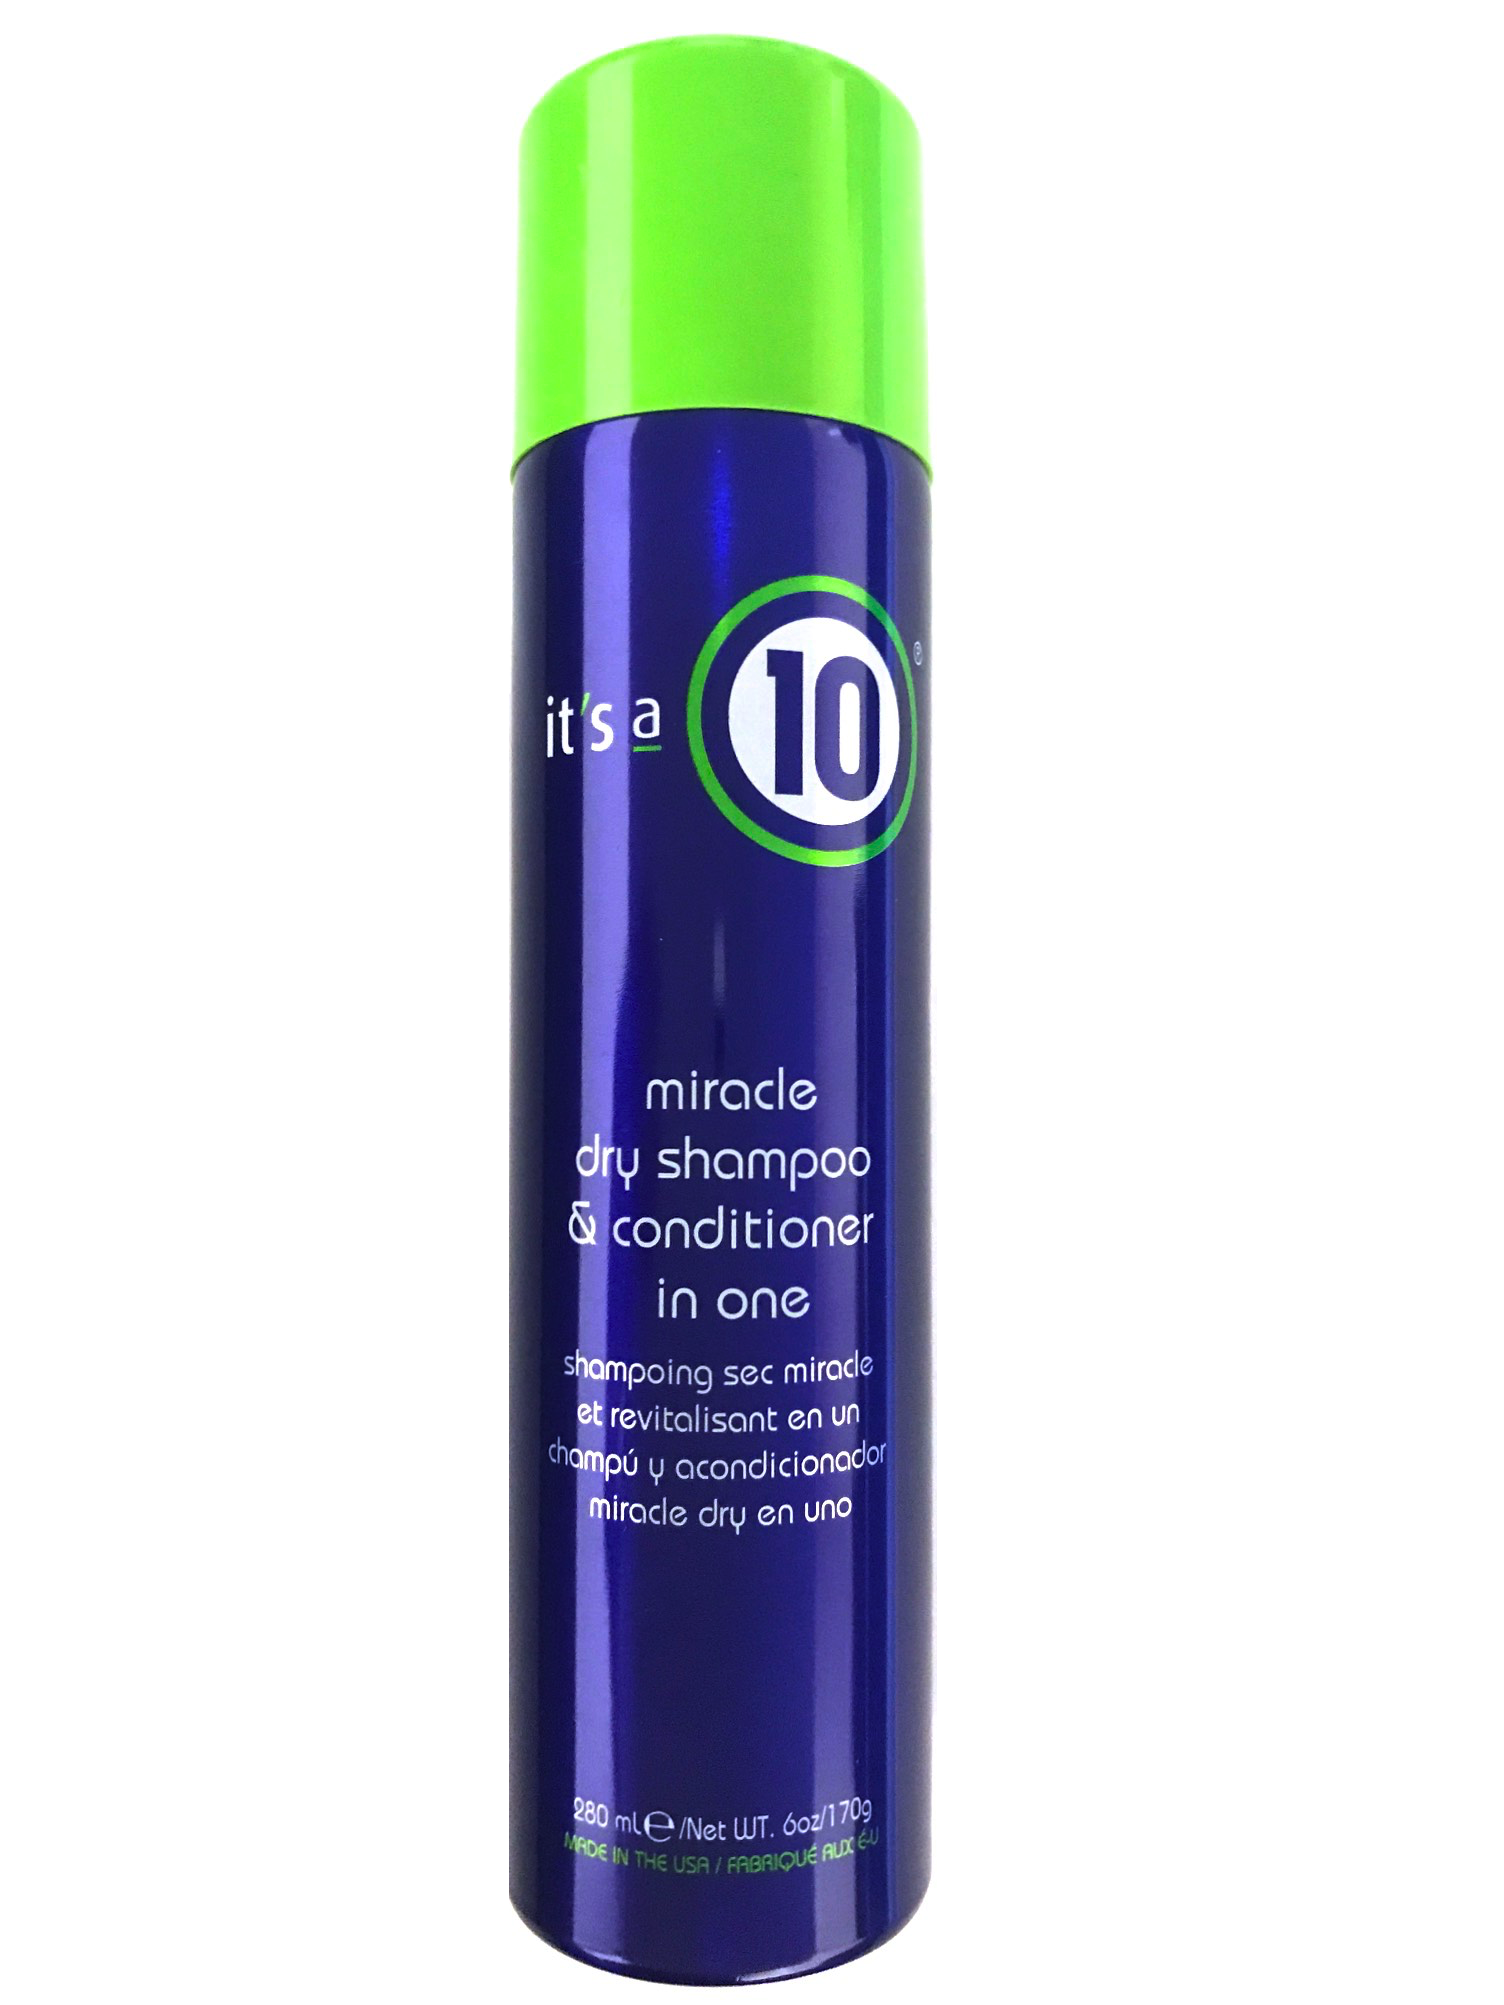 It's A 10 Miracle Dry Shampoo & Conditioner 6 Oz, Refreshes Hair Fragrance And Absorbes Excess Oil